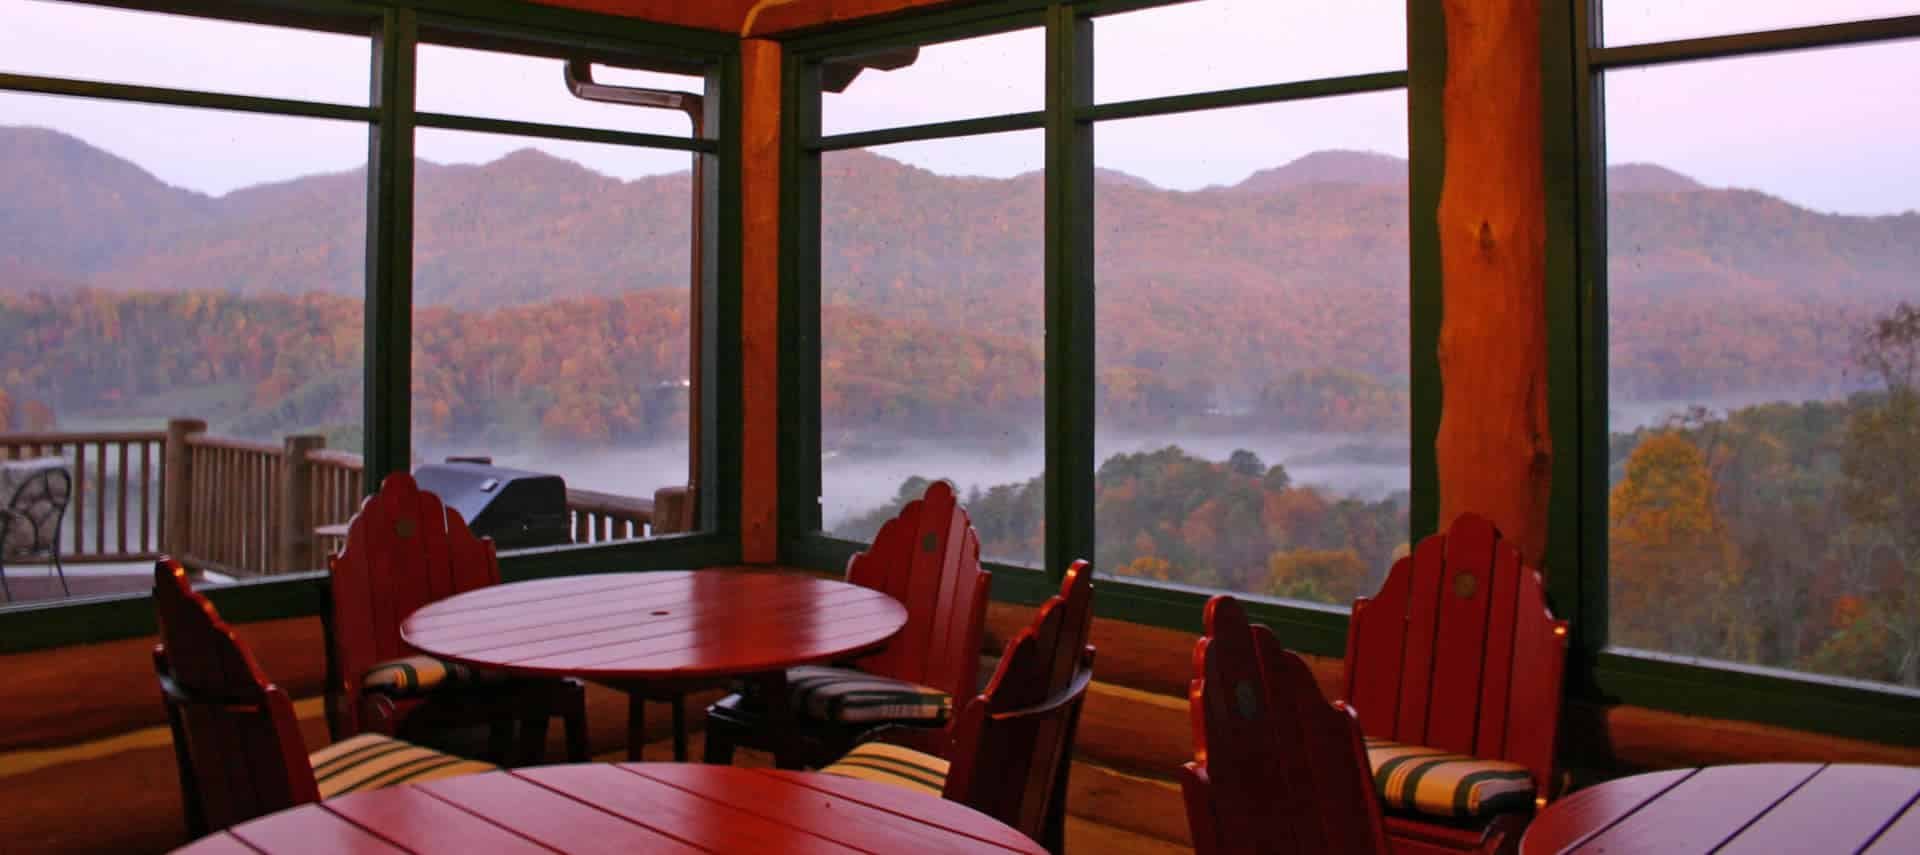 Breakfast tables with padded chairs in a room with large windows overlooking a misty mountain scene.